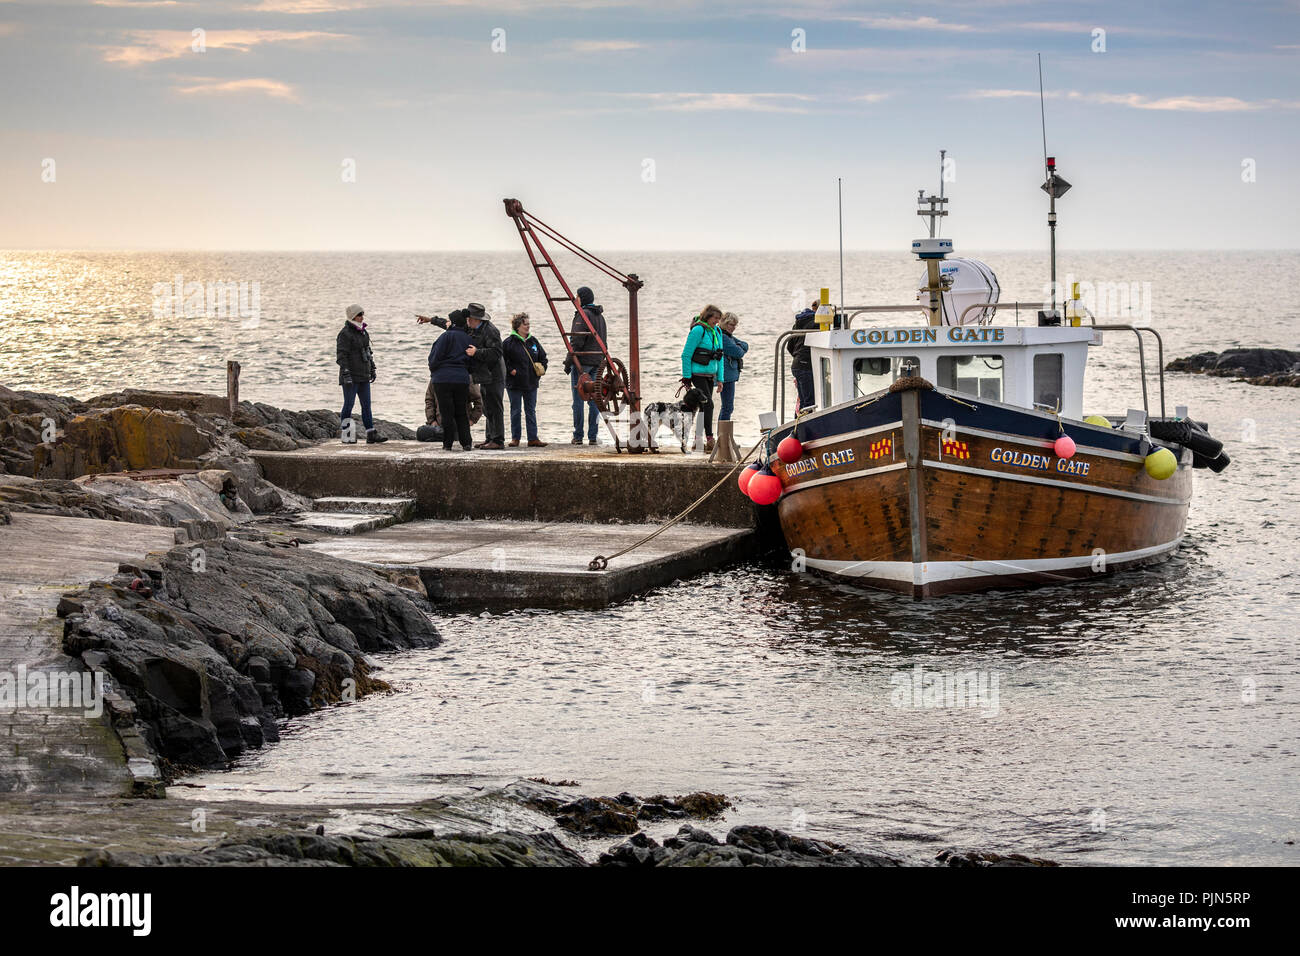 Day trippers on a boat tour of the Farne Islands, Northumberland, England. Stock Photo